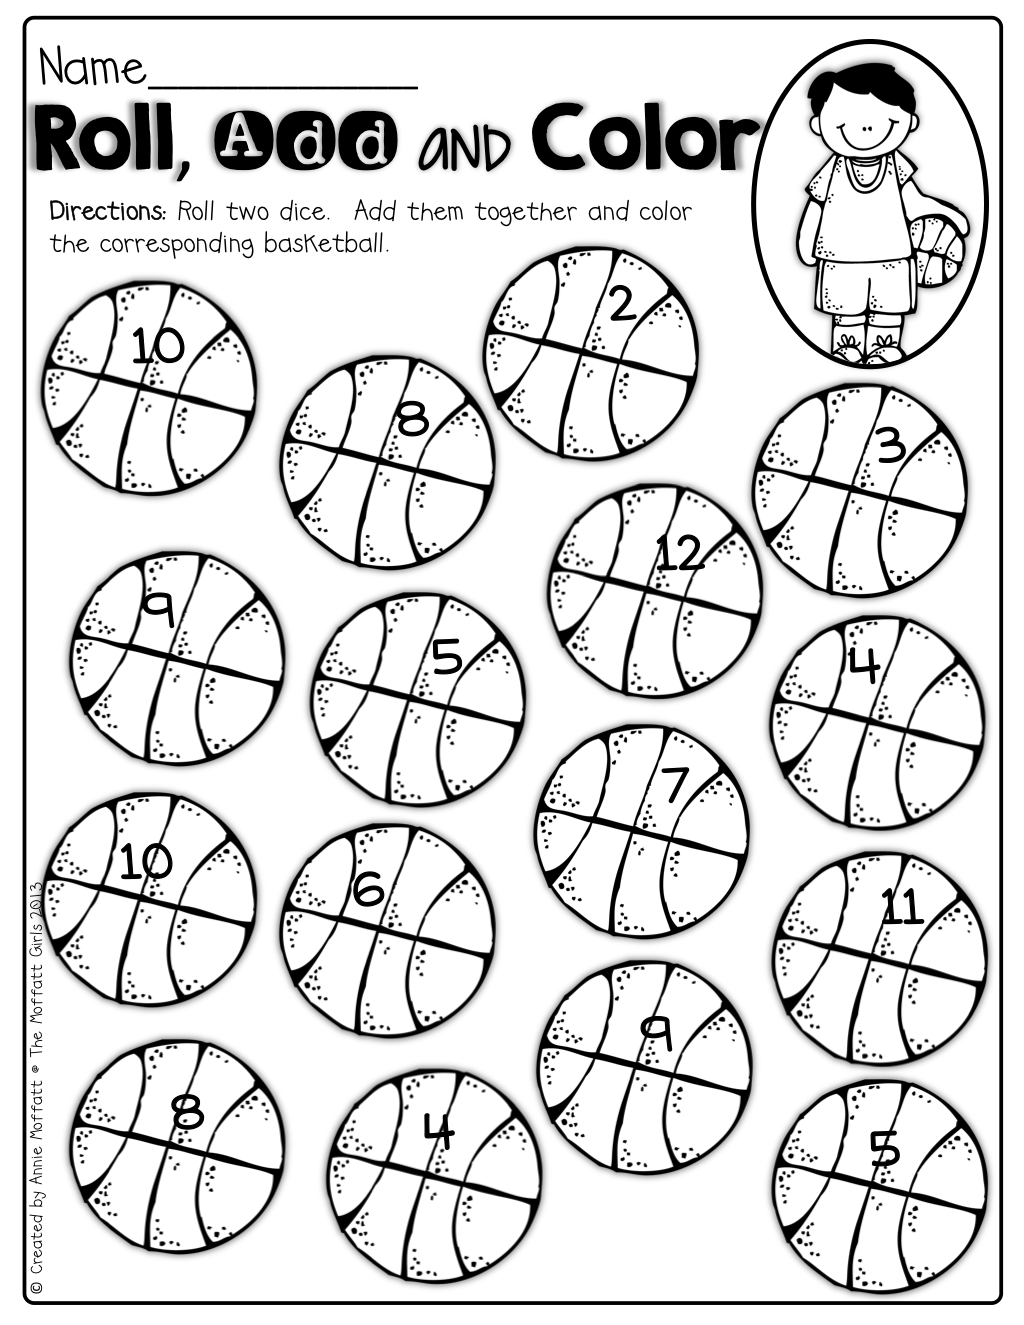 Roll 2 dice, add the up and color the basketball! Such a